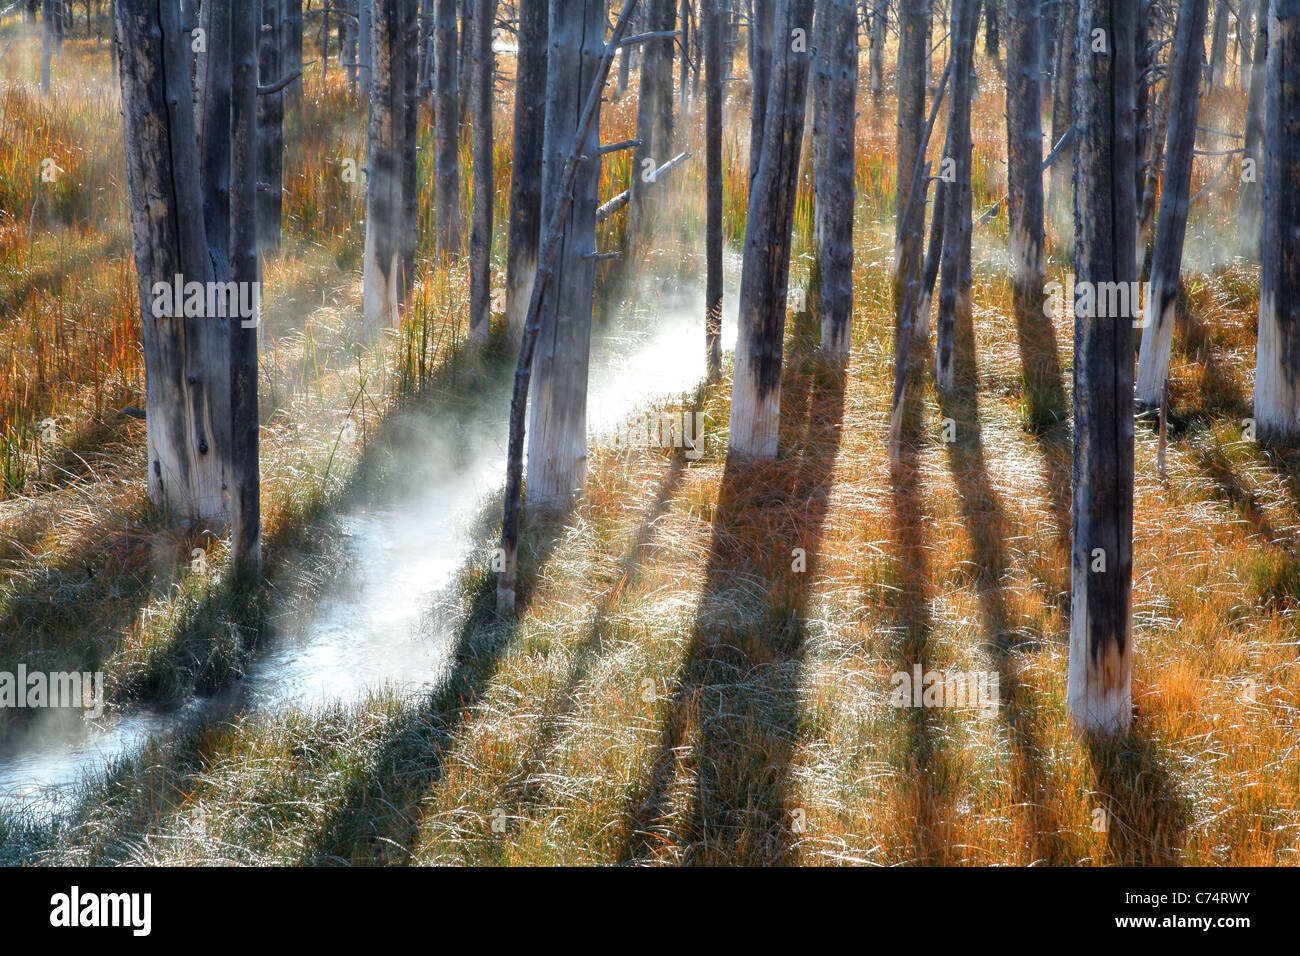 Thermal spring flowing through a misty meadow and dead trees in autumn, Yellowstone National Park, Wyoming, USA - Stock Image